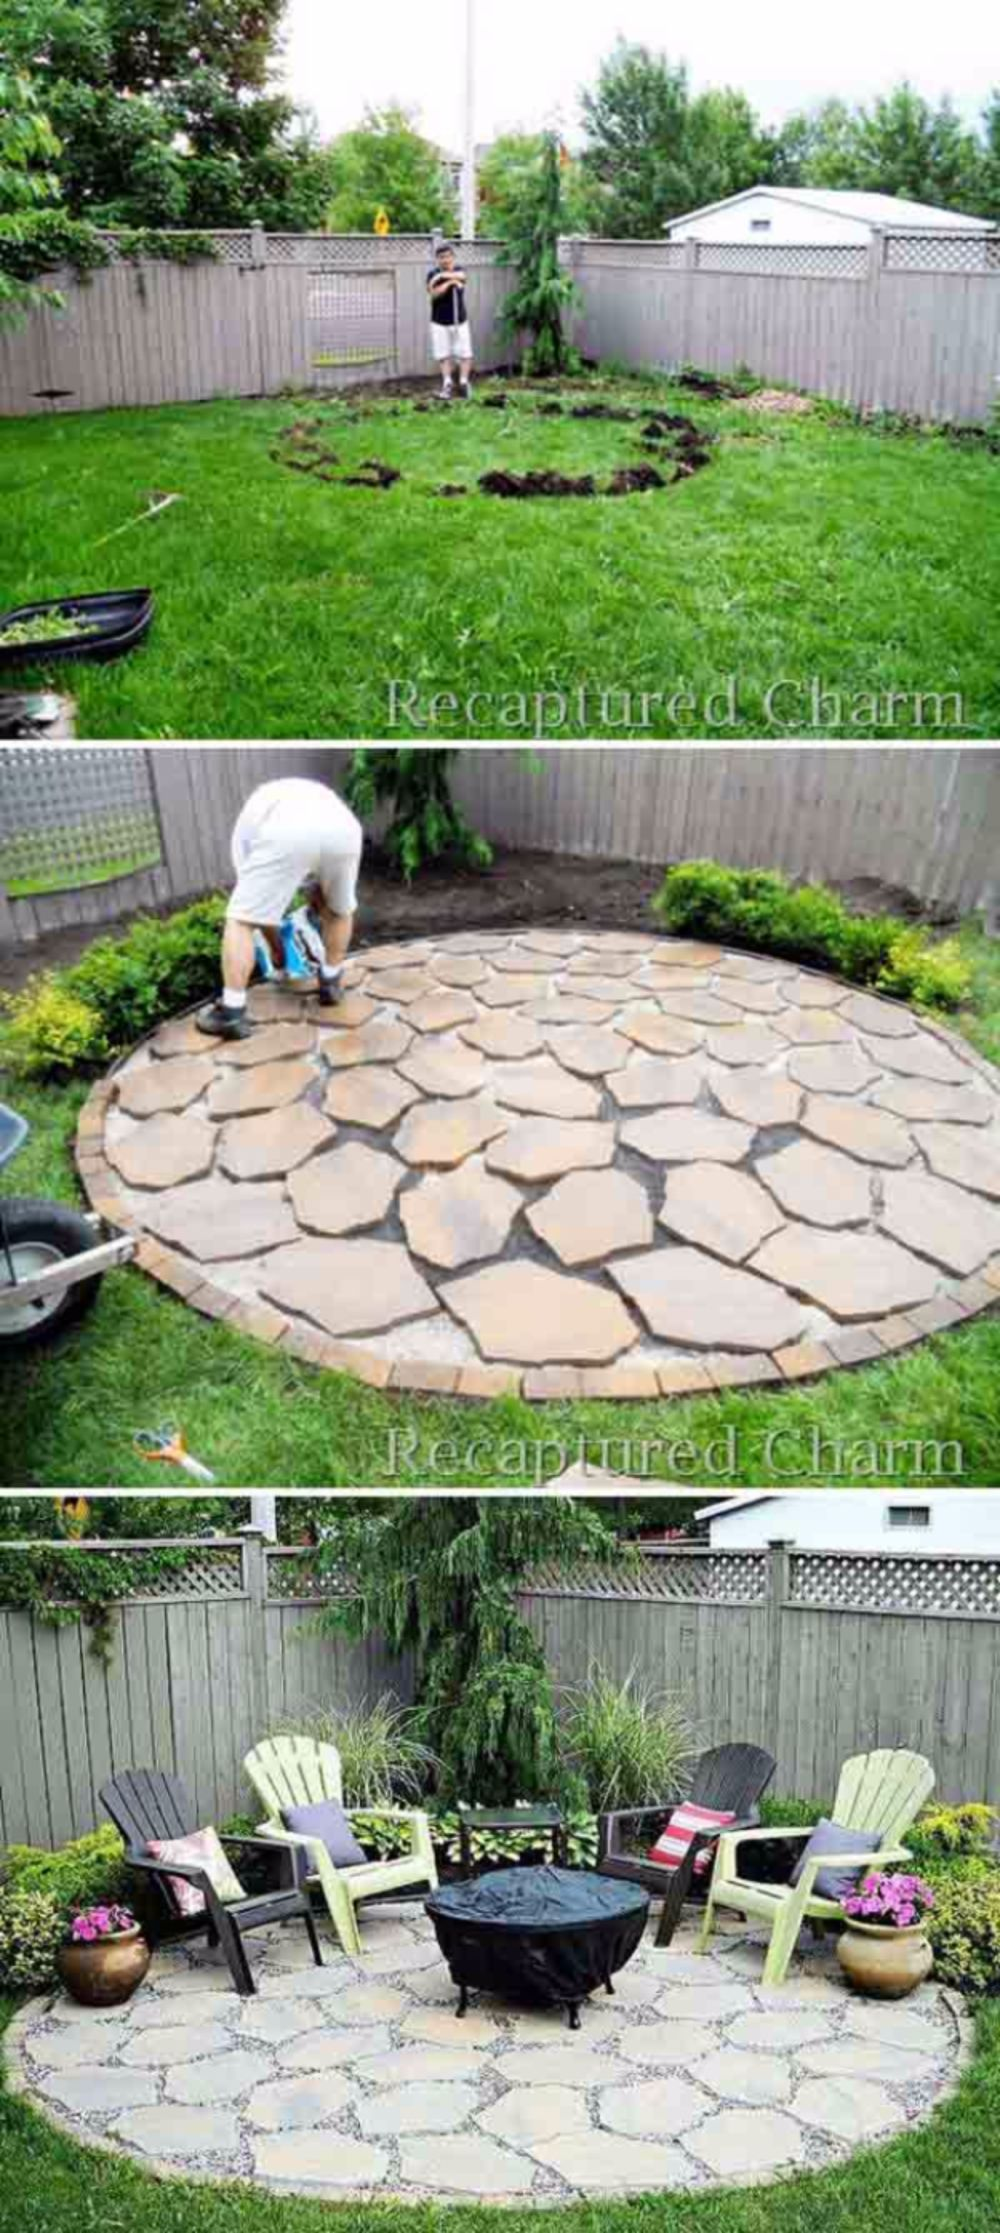 30 diy patio ideas on a budget diy patio patios and budgeting 30 diy patio ideas on a budget wartaku solutioingenieria Image collections